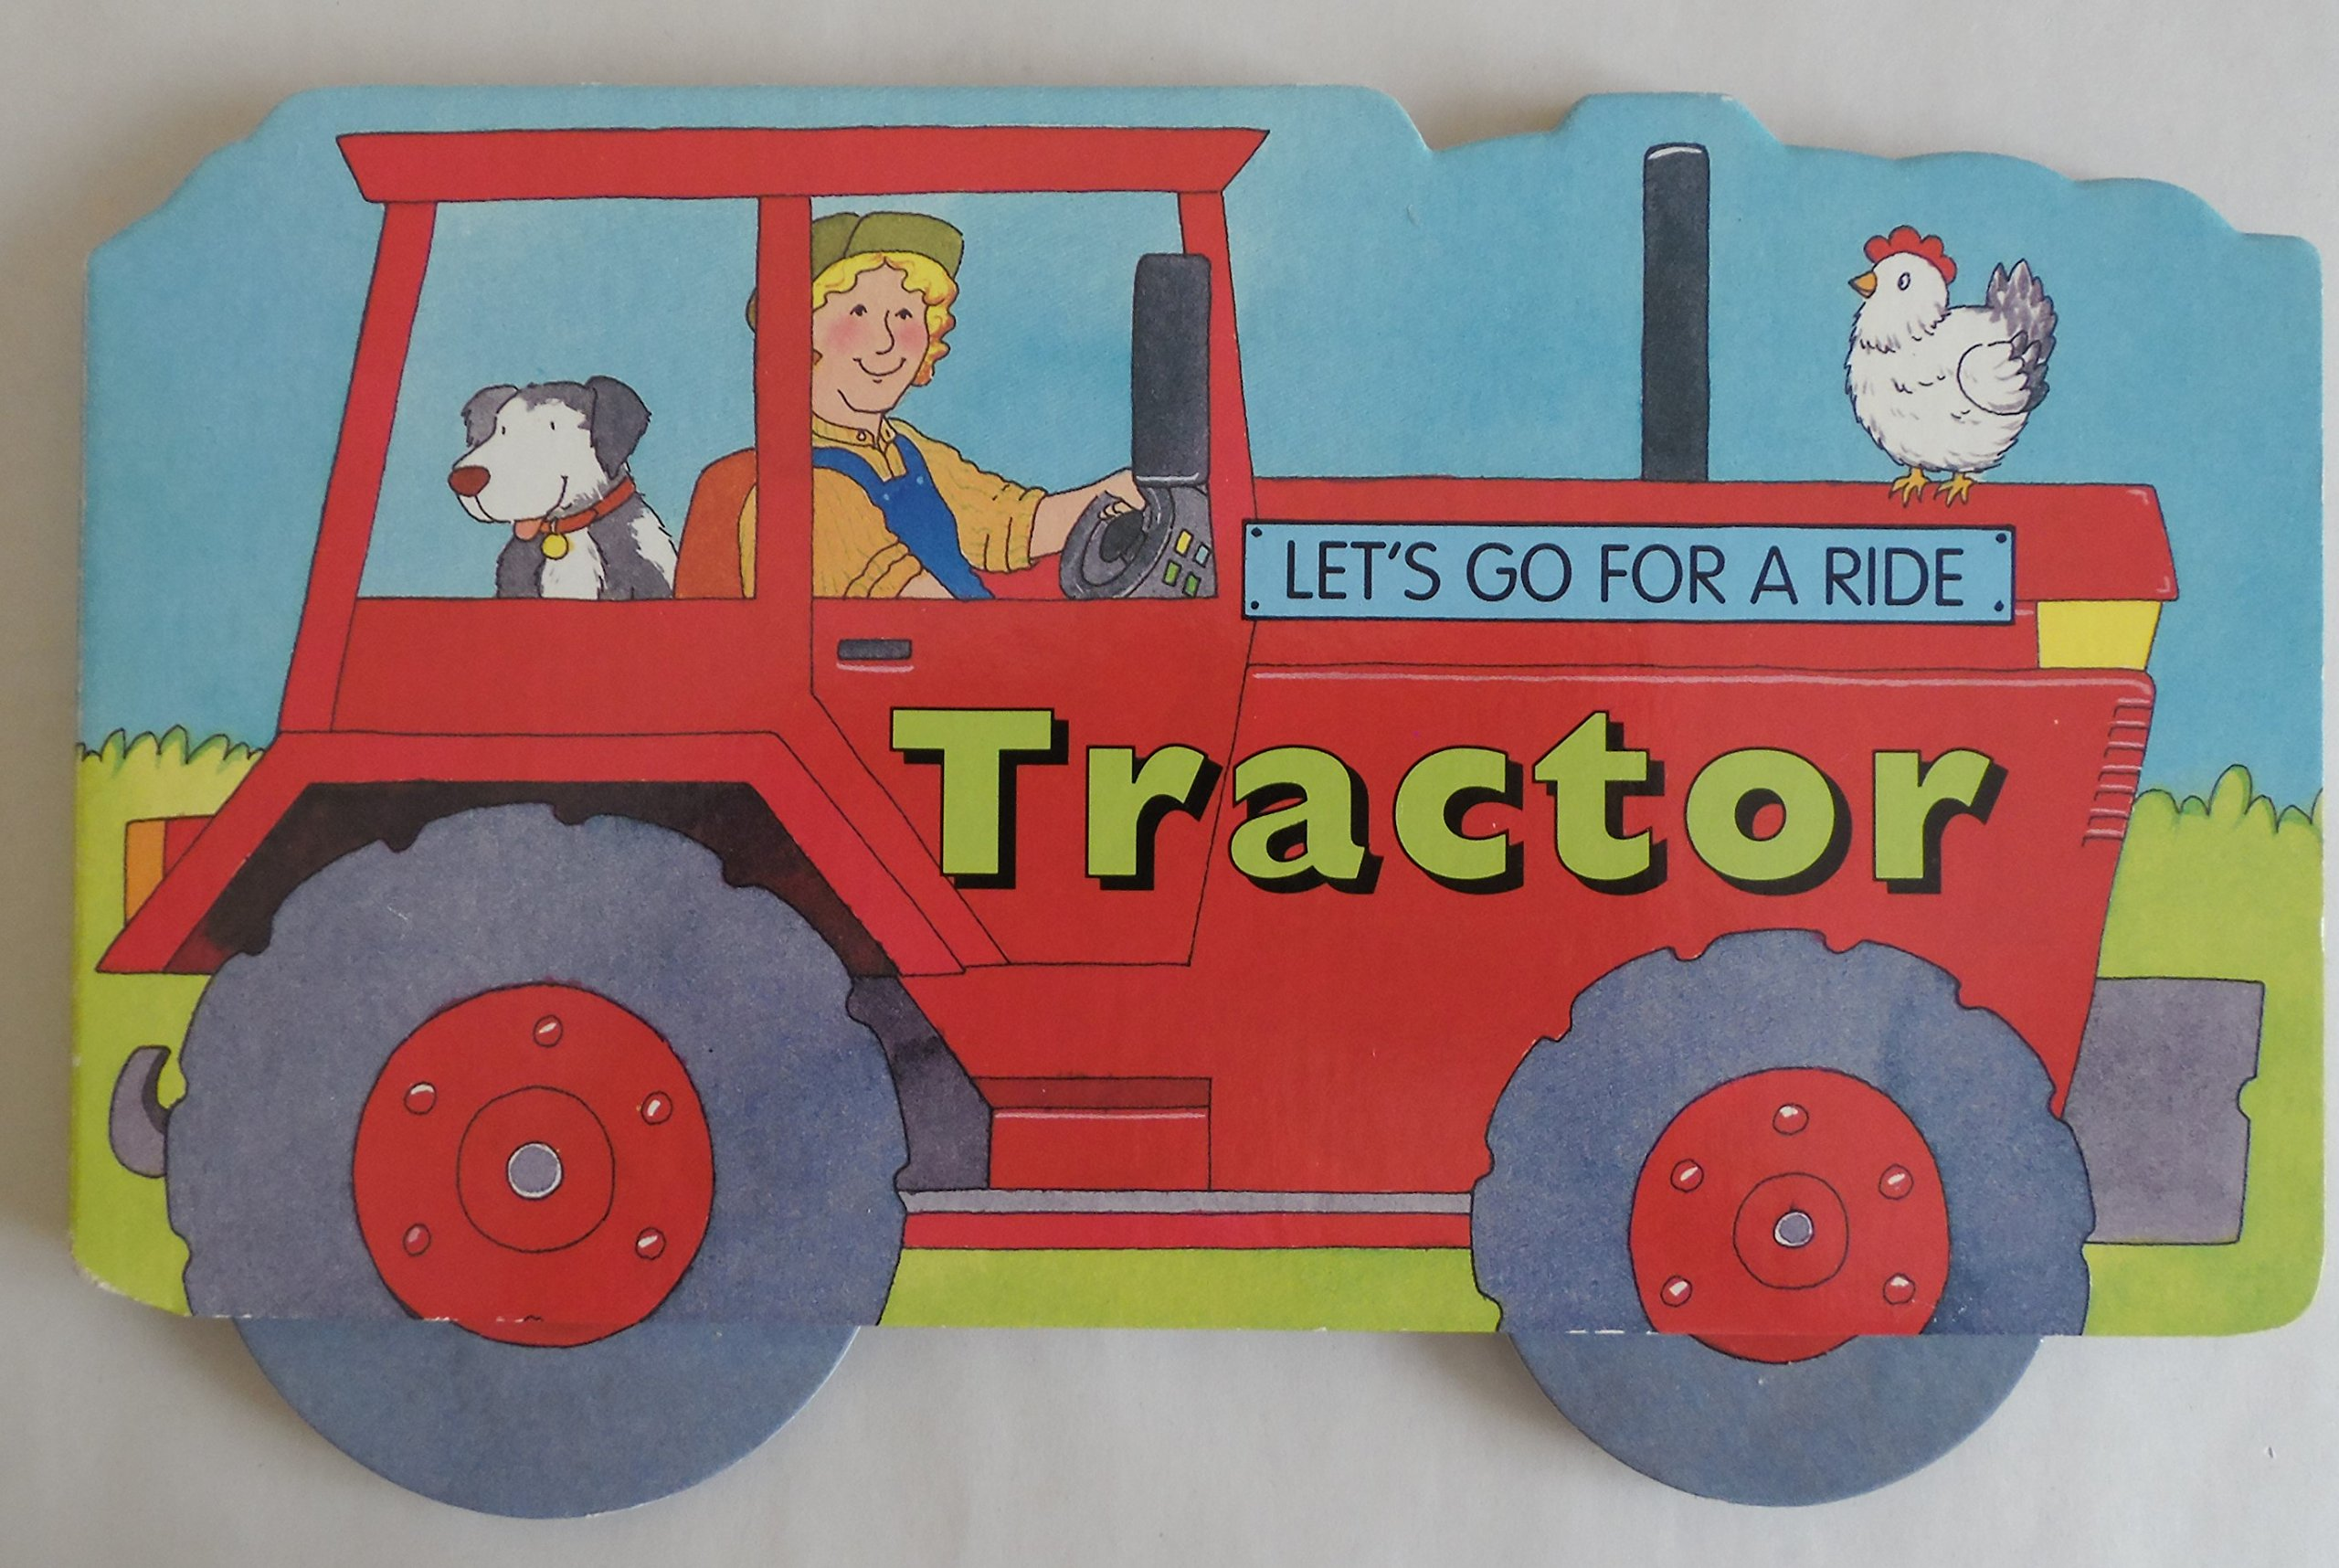 Let's Go for a Ride! Tractor (Let's Go for a Ride!) pdf